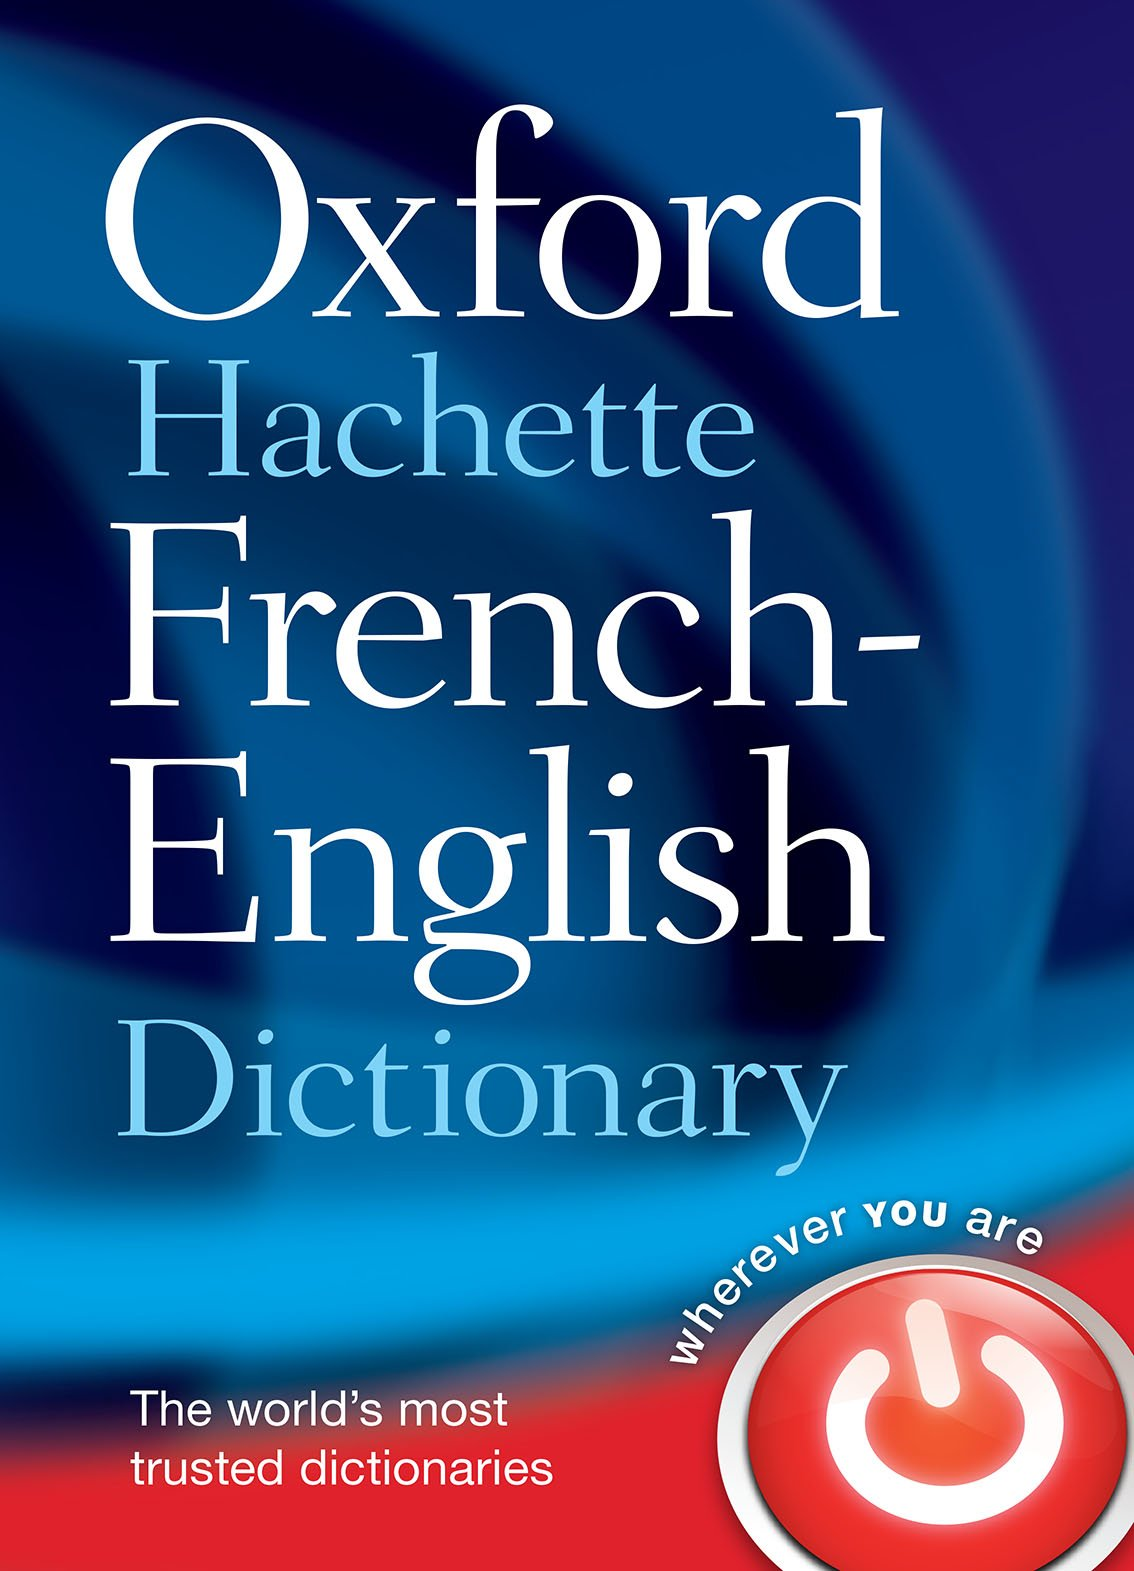 Oxford Hachette French - English Dictionary